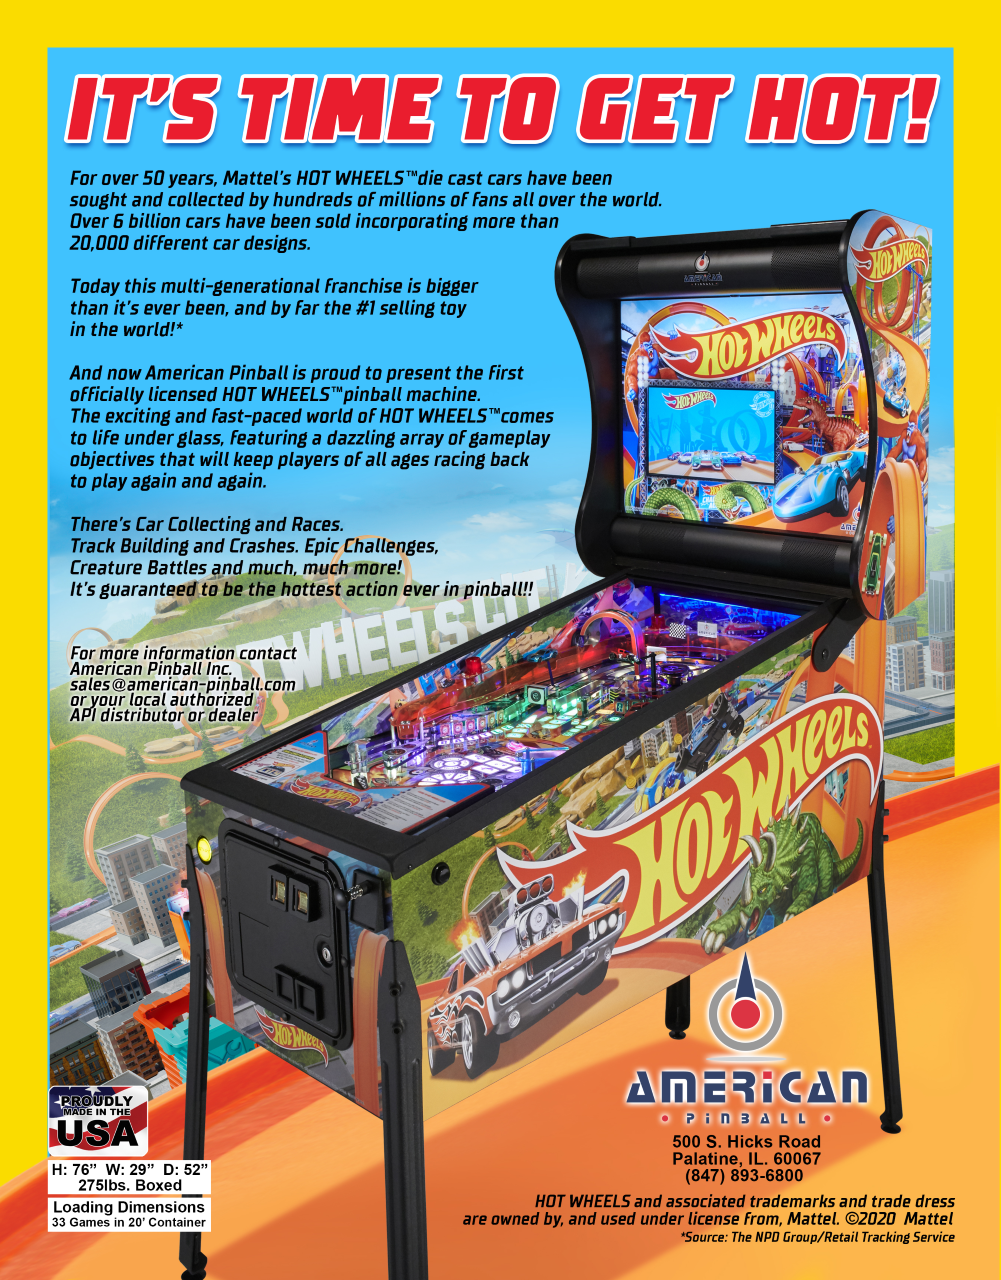 CHALLENGE ACCEPTED!  AMERICAN PINBALL TURNS UP THE HEAT WITH INTRODUCTION OF HOT WHEELS™